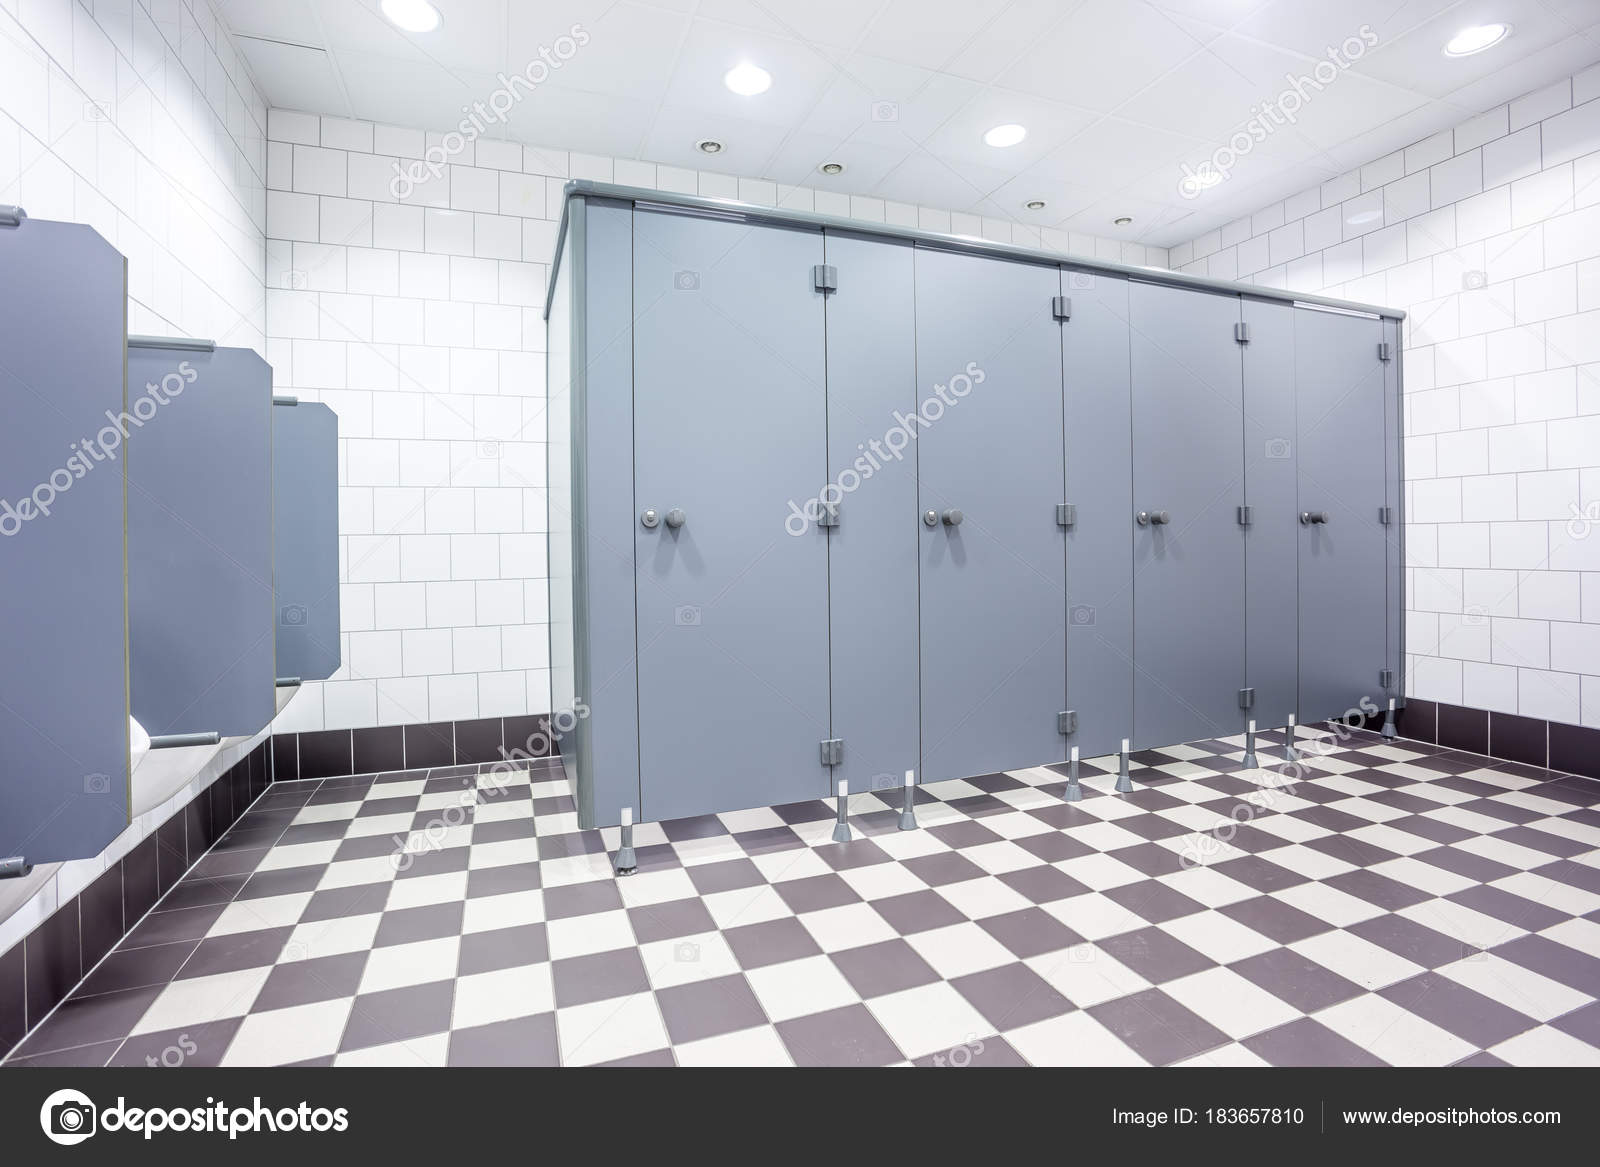 urinal and toilet doors — Stock Photo © DenBoma #183657810 on commercial bathroom paper towel dispenser, commercial bathroom counters, commercial bathroom sinks, commercial bathroom vanity units, commercial bathroom stalls, commercial bathroom partitions, commercial bathroom vanity tops, commercial bathroom showers,